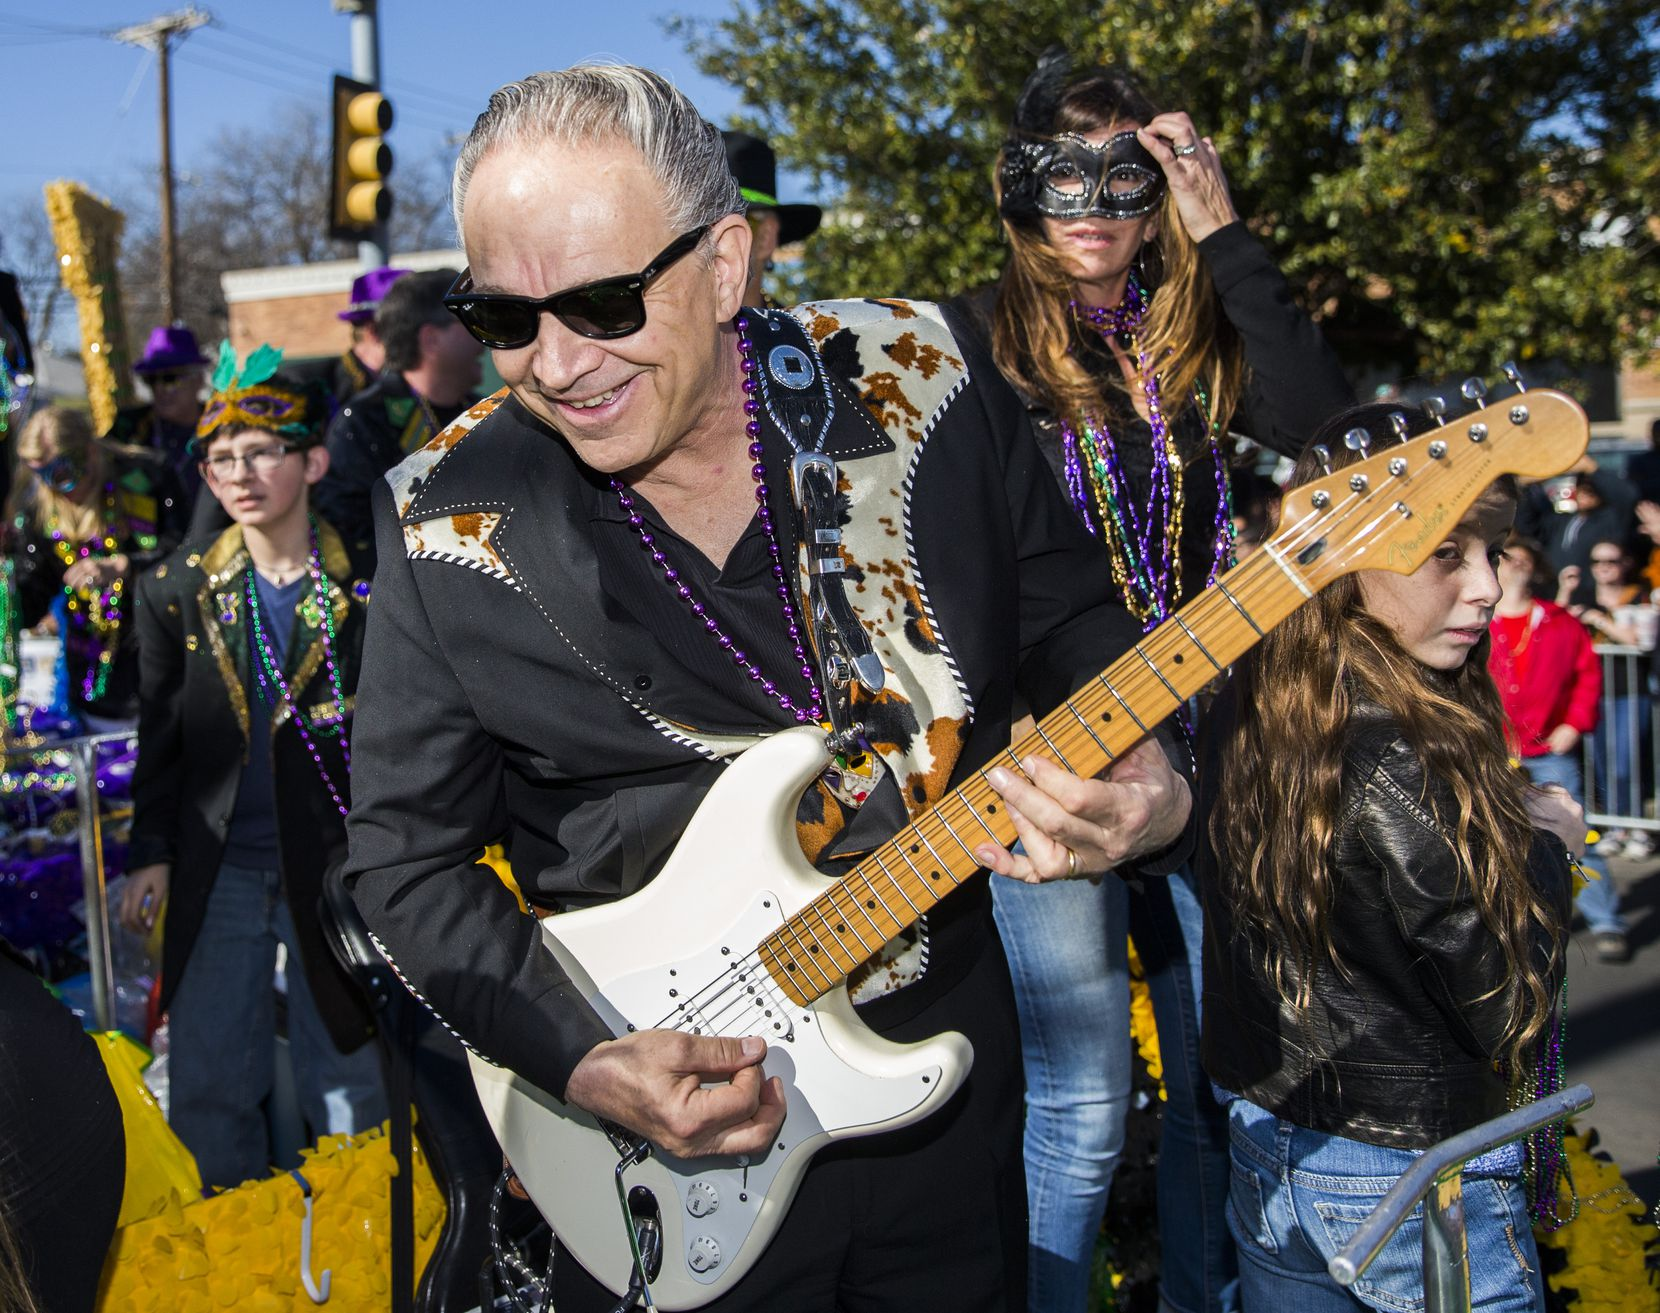 Musician and parade Grand Marshal Jimmie Vaughan plays his guitar on a float during the annual Oak Cliff Mardi Gras parade on Sunday, Feb. 7, 2016 in the Oak Cliff neighborhood in Dallas.